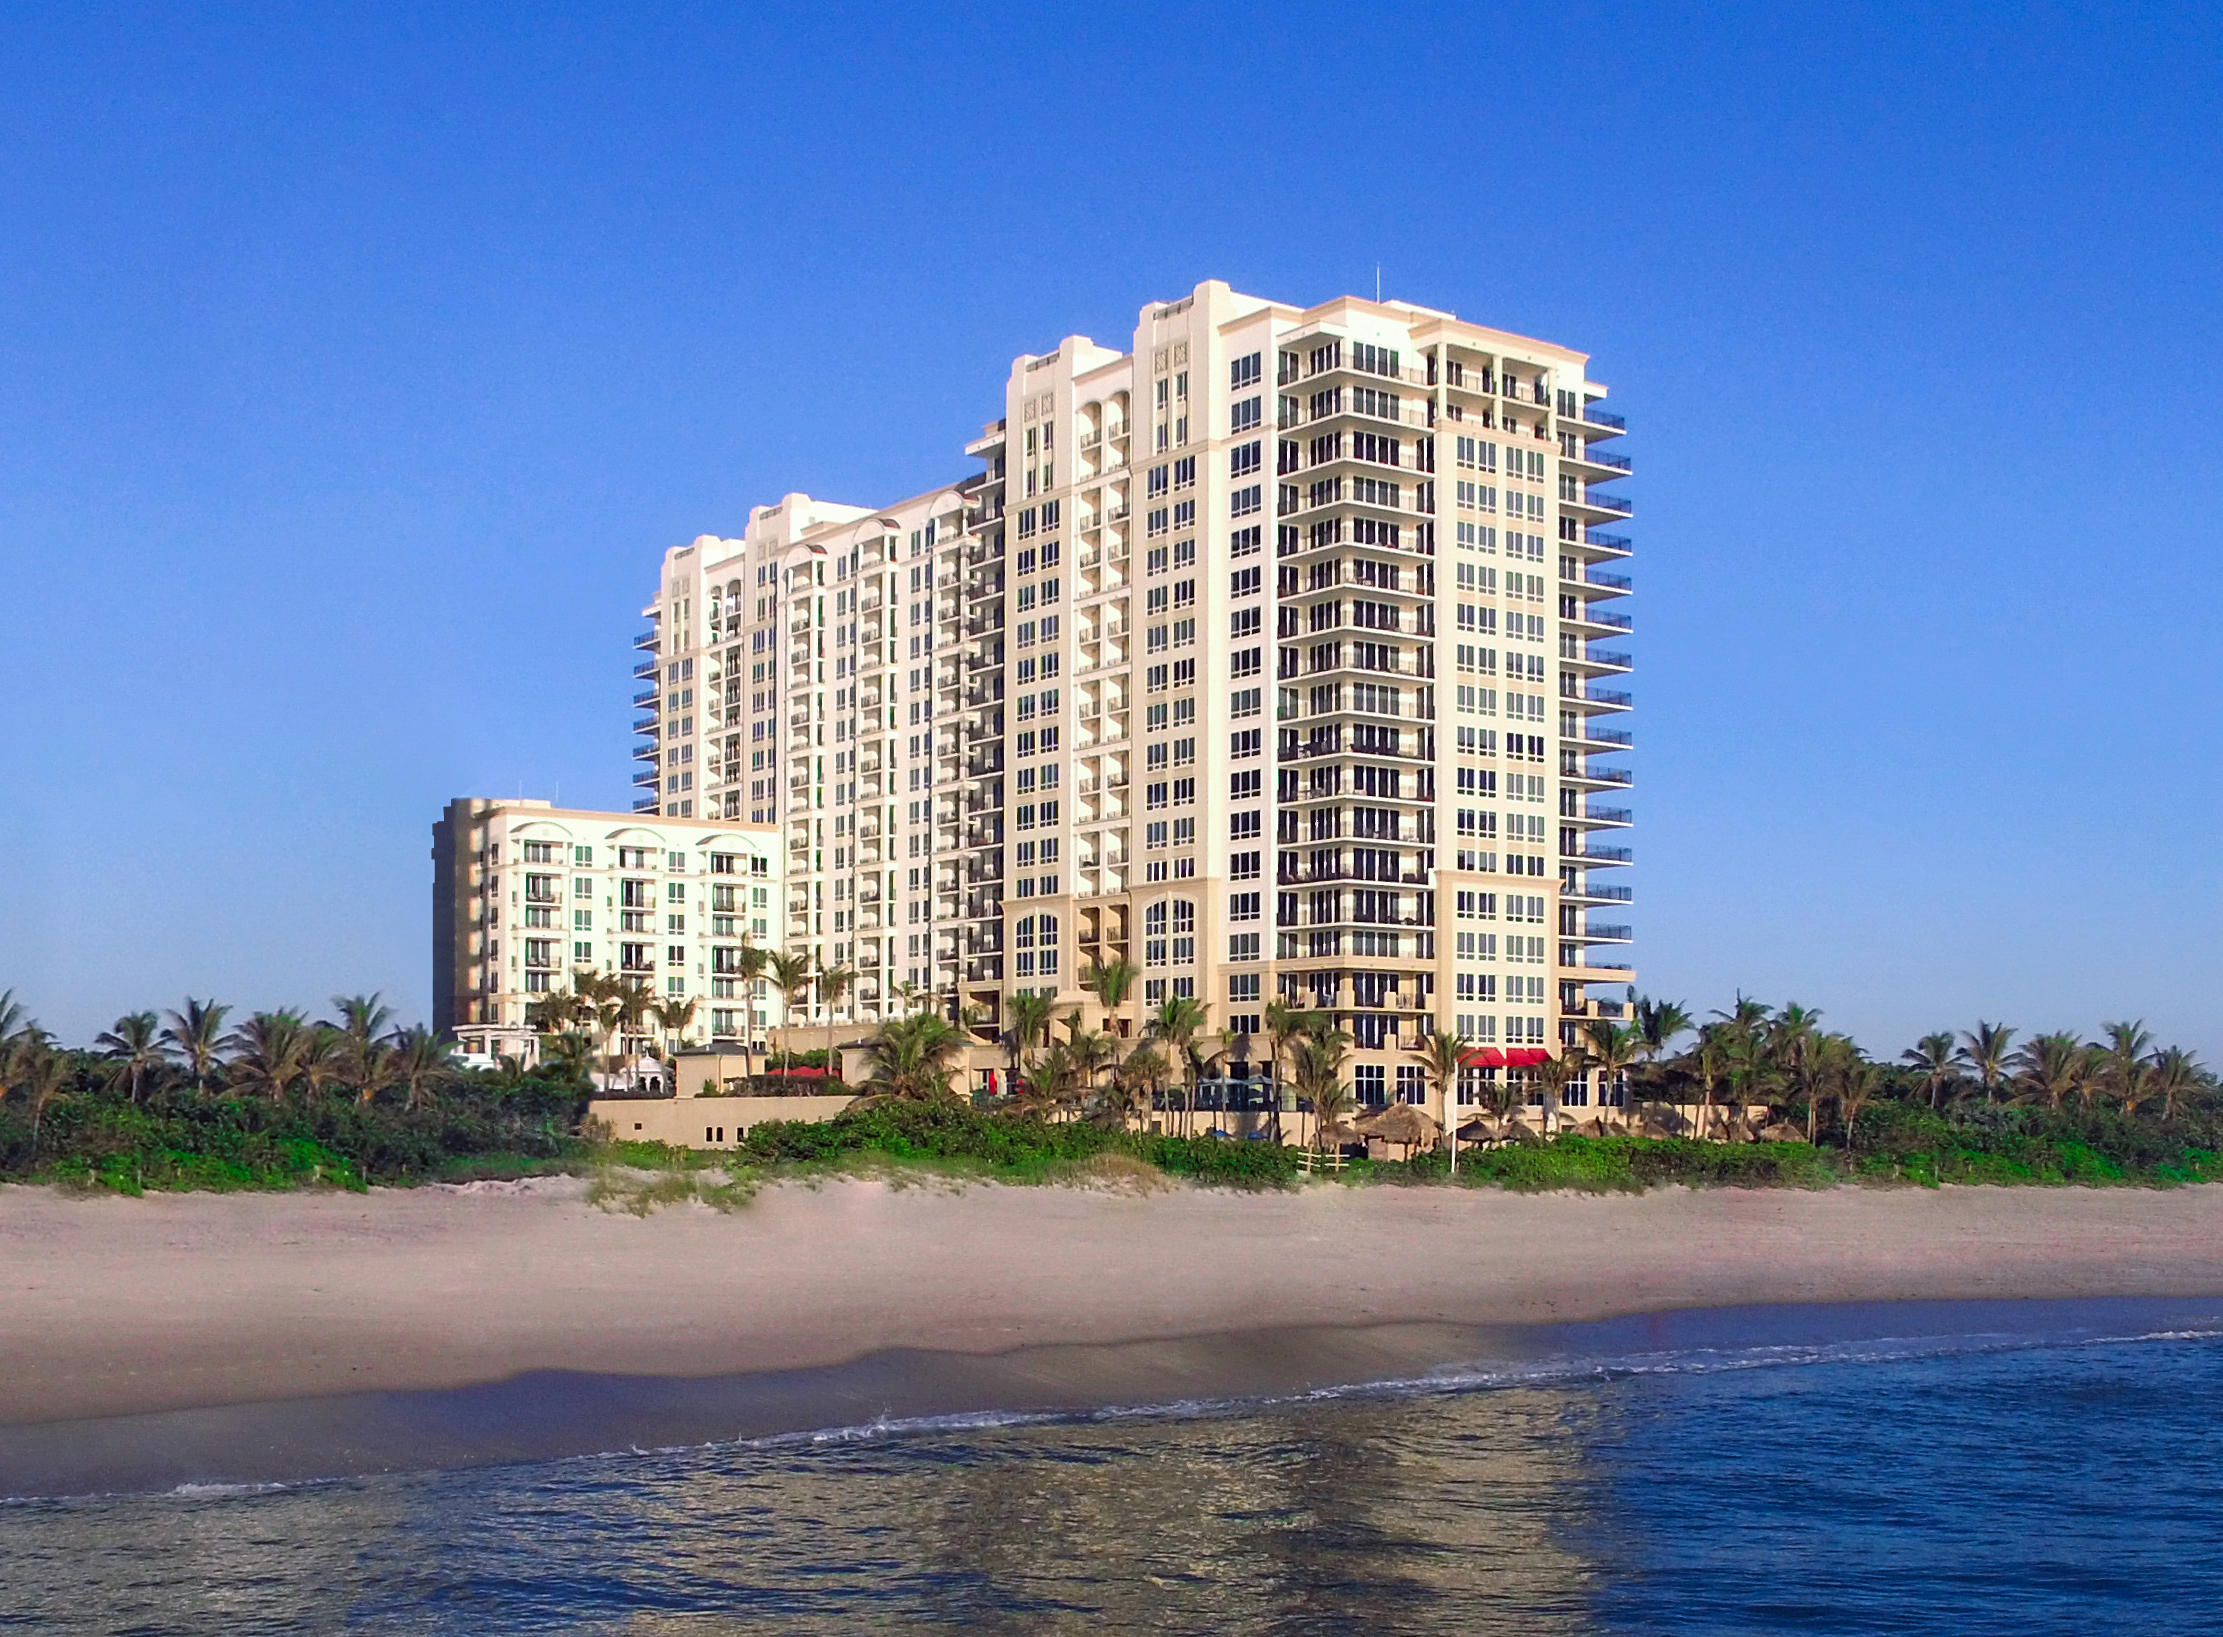 OCEAN FACING VIEWS, FULLY FURNISHED 1 BEDROOM 1 BATH WITH FULL KITCHEN, WASHER DRYER, MARBLE FLOORING, CARPETING, WORLD CLASS AMENITIES. Enjoy a luxury lifestyle vacation at this ocean front beach resort and relax. When not visiting the property choose the best management team to generate income year round through nightly rentals.